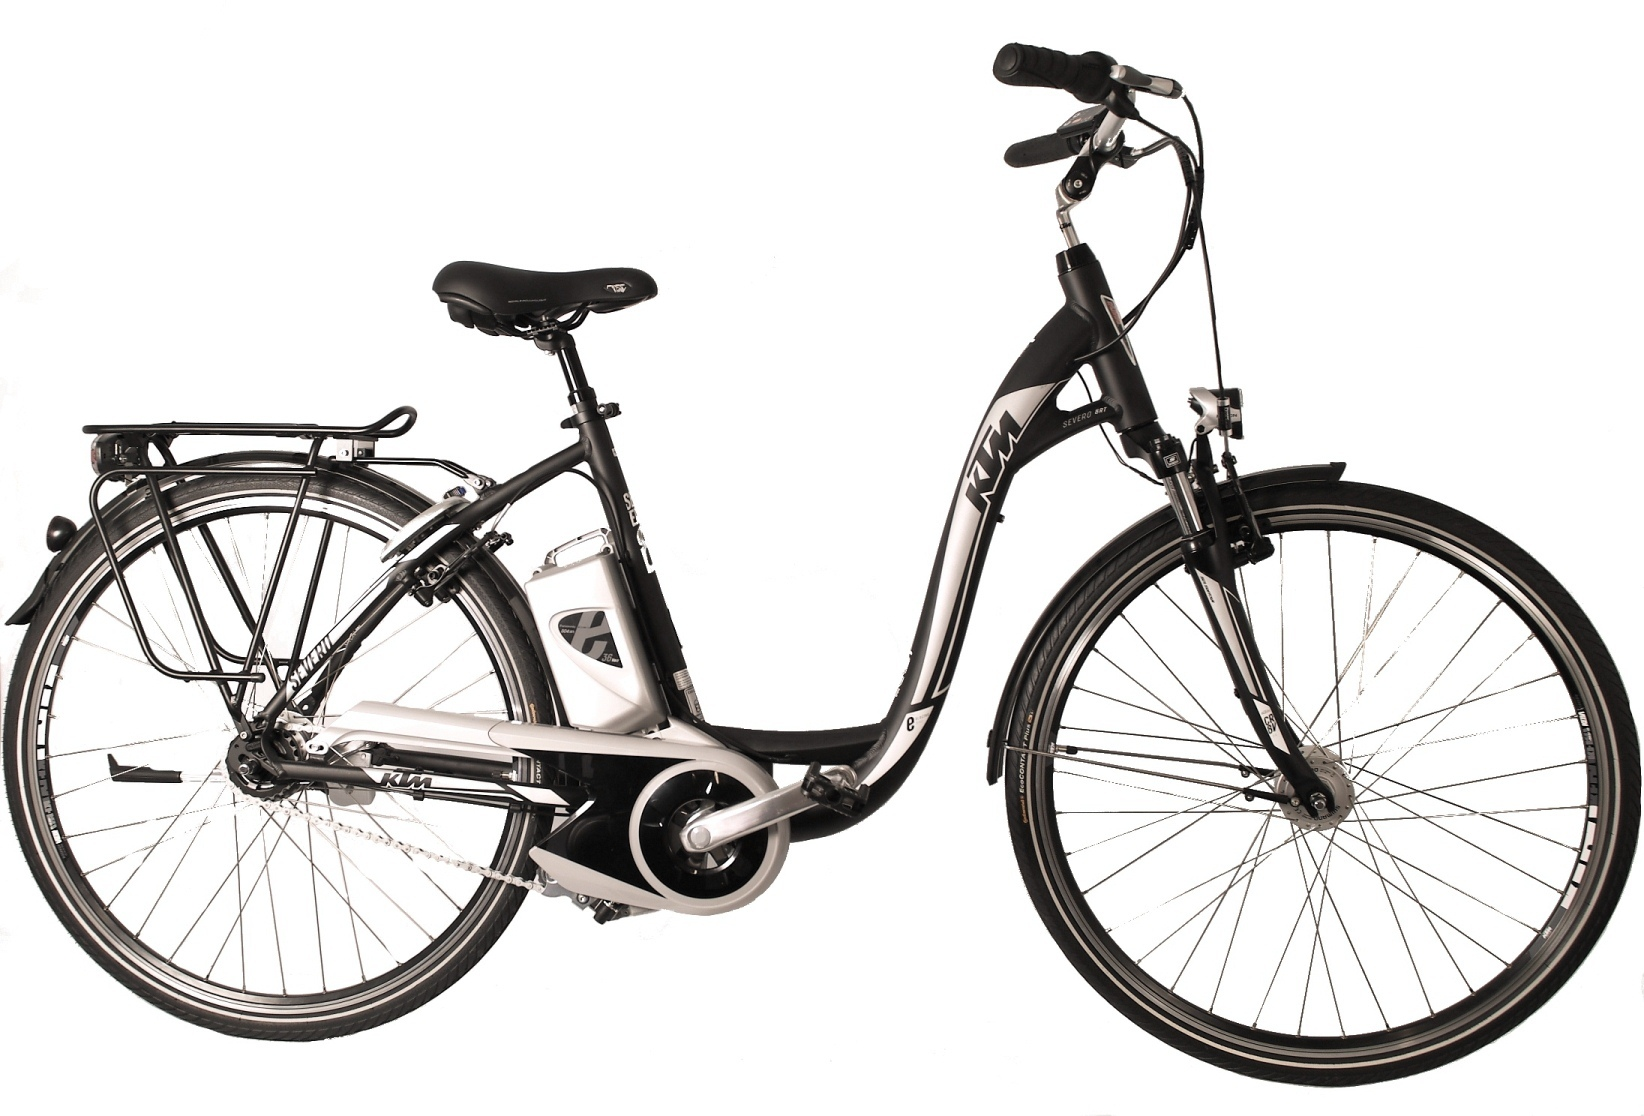 elektro fahrrad ktm severo 8rt 26 zoll pedelec ebike 46 cm. Black Bedroom Furniture Sets. Home Design Ideas